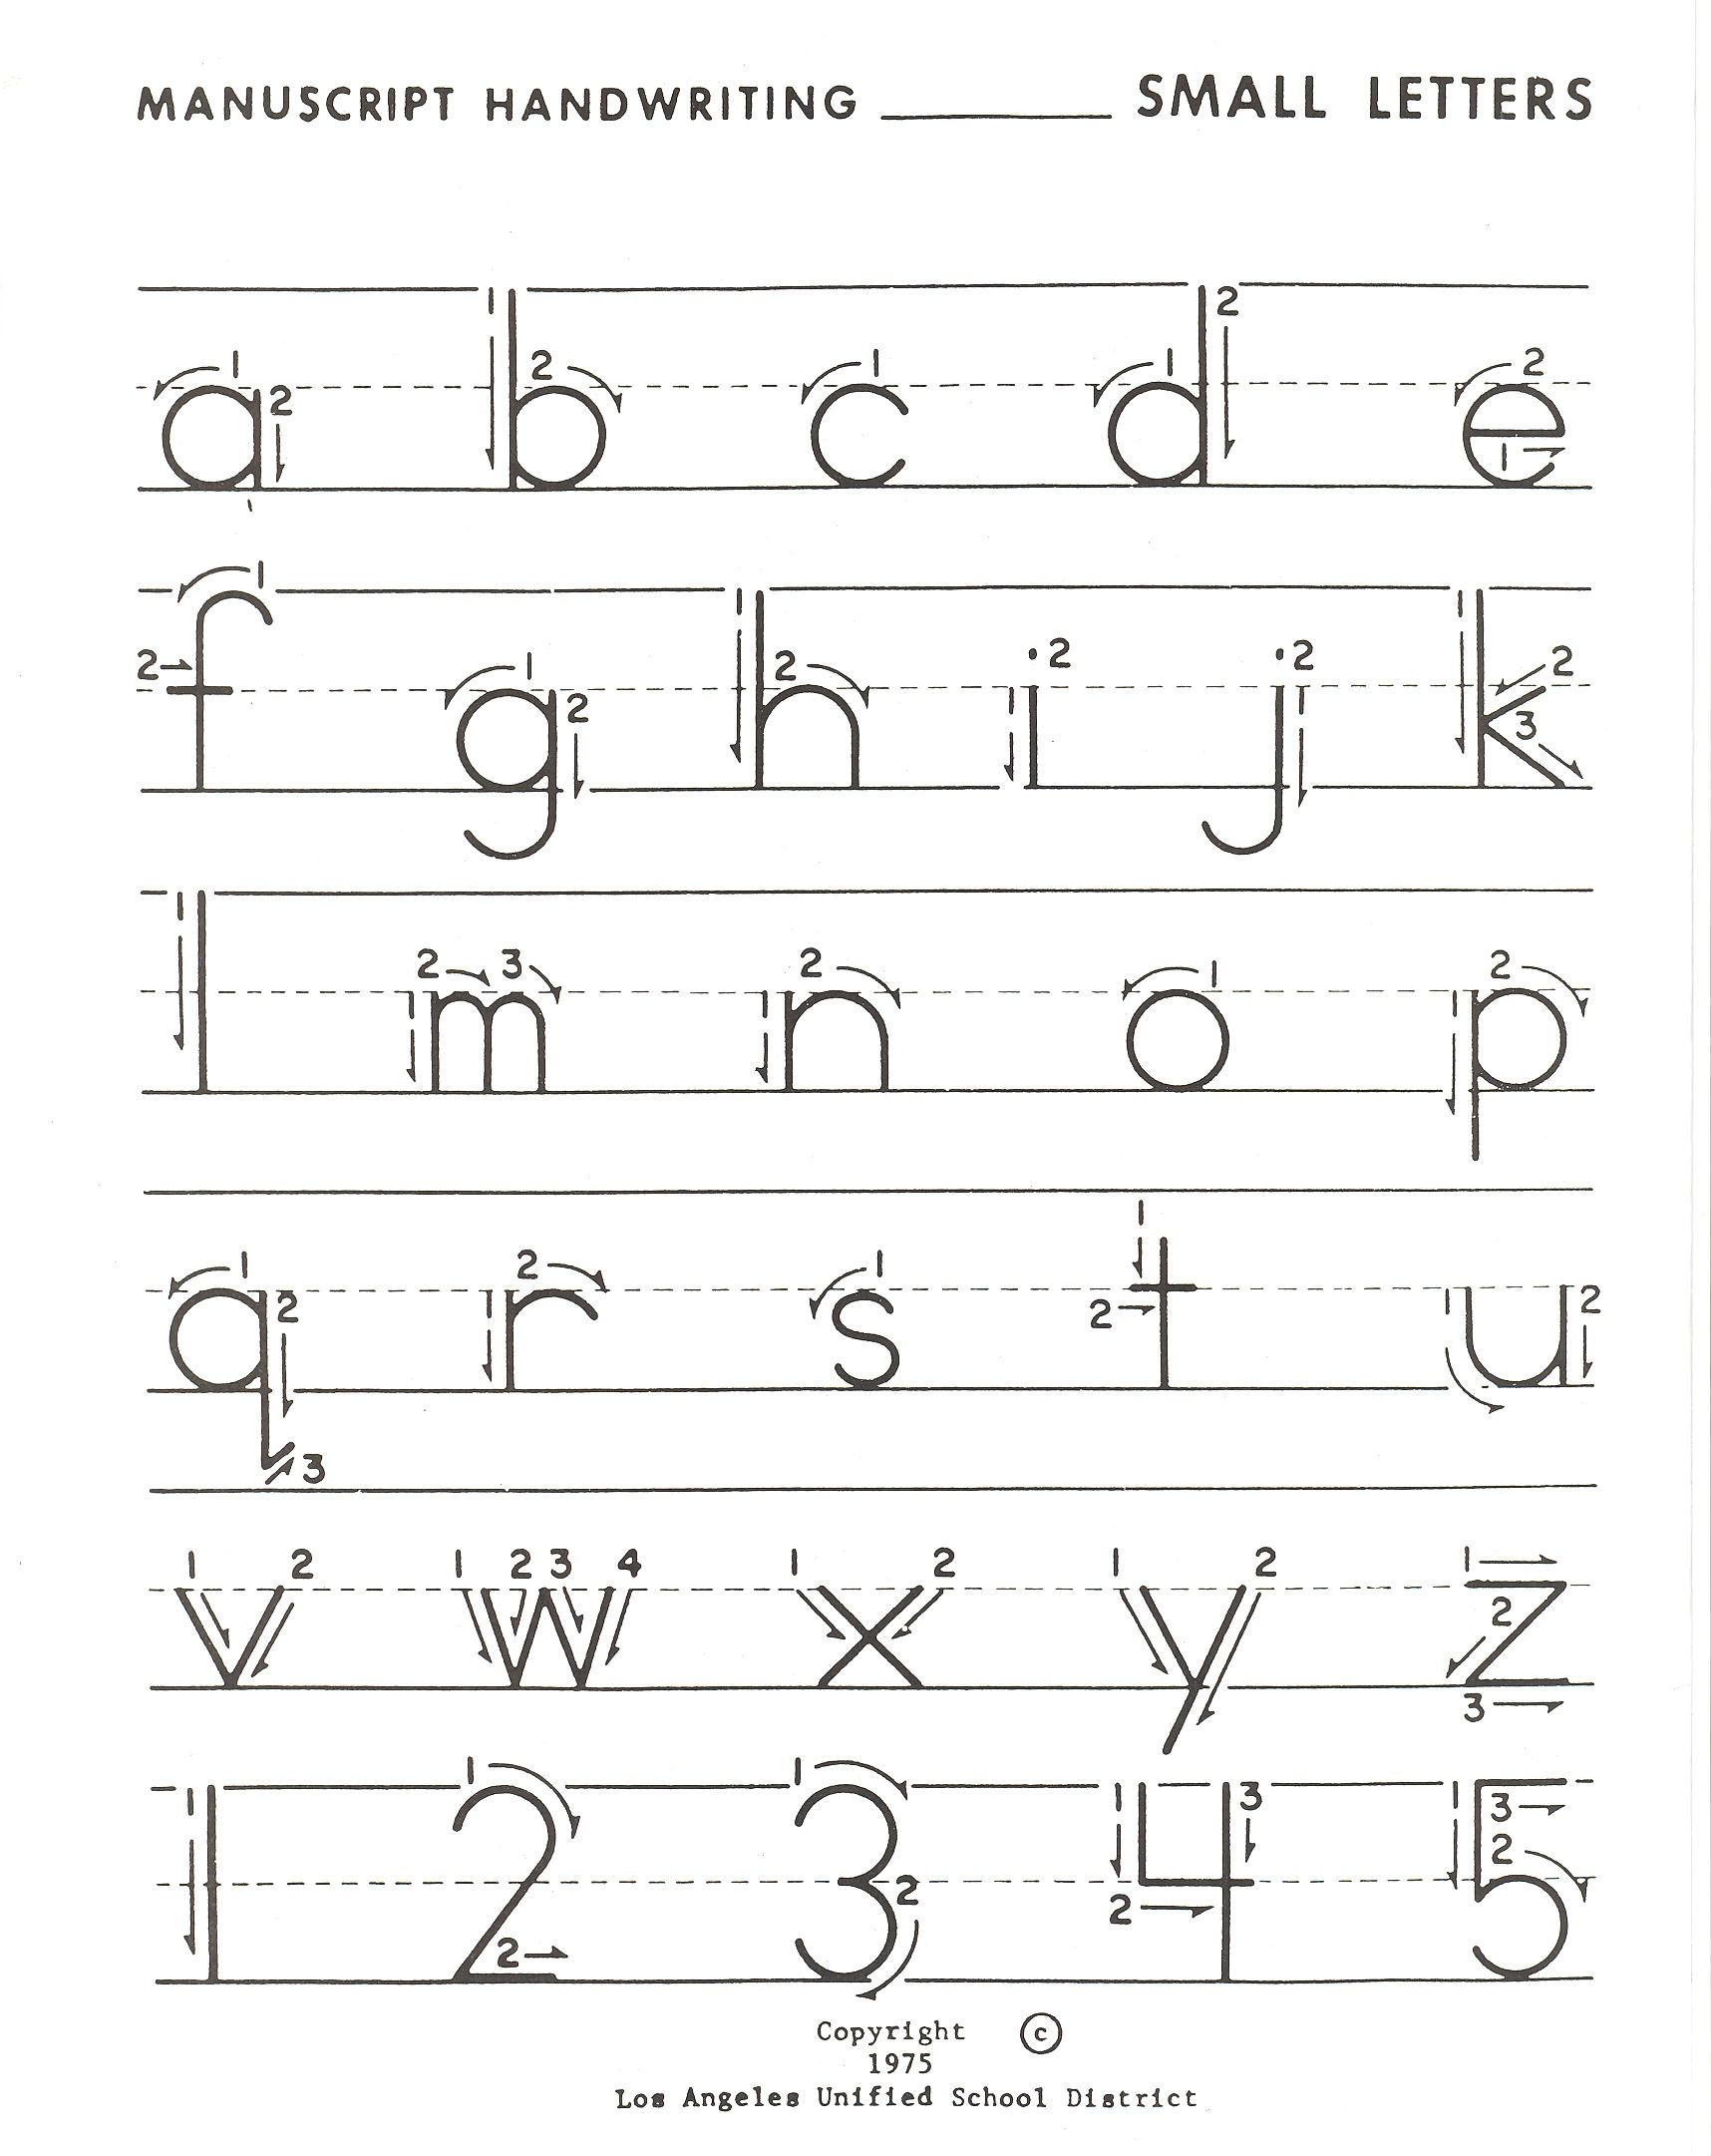 Worksheets Letter Practice lowercase letter practice worksheets pinterest lower case letters cases and homework